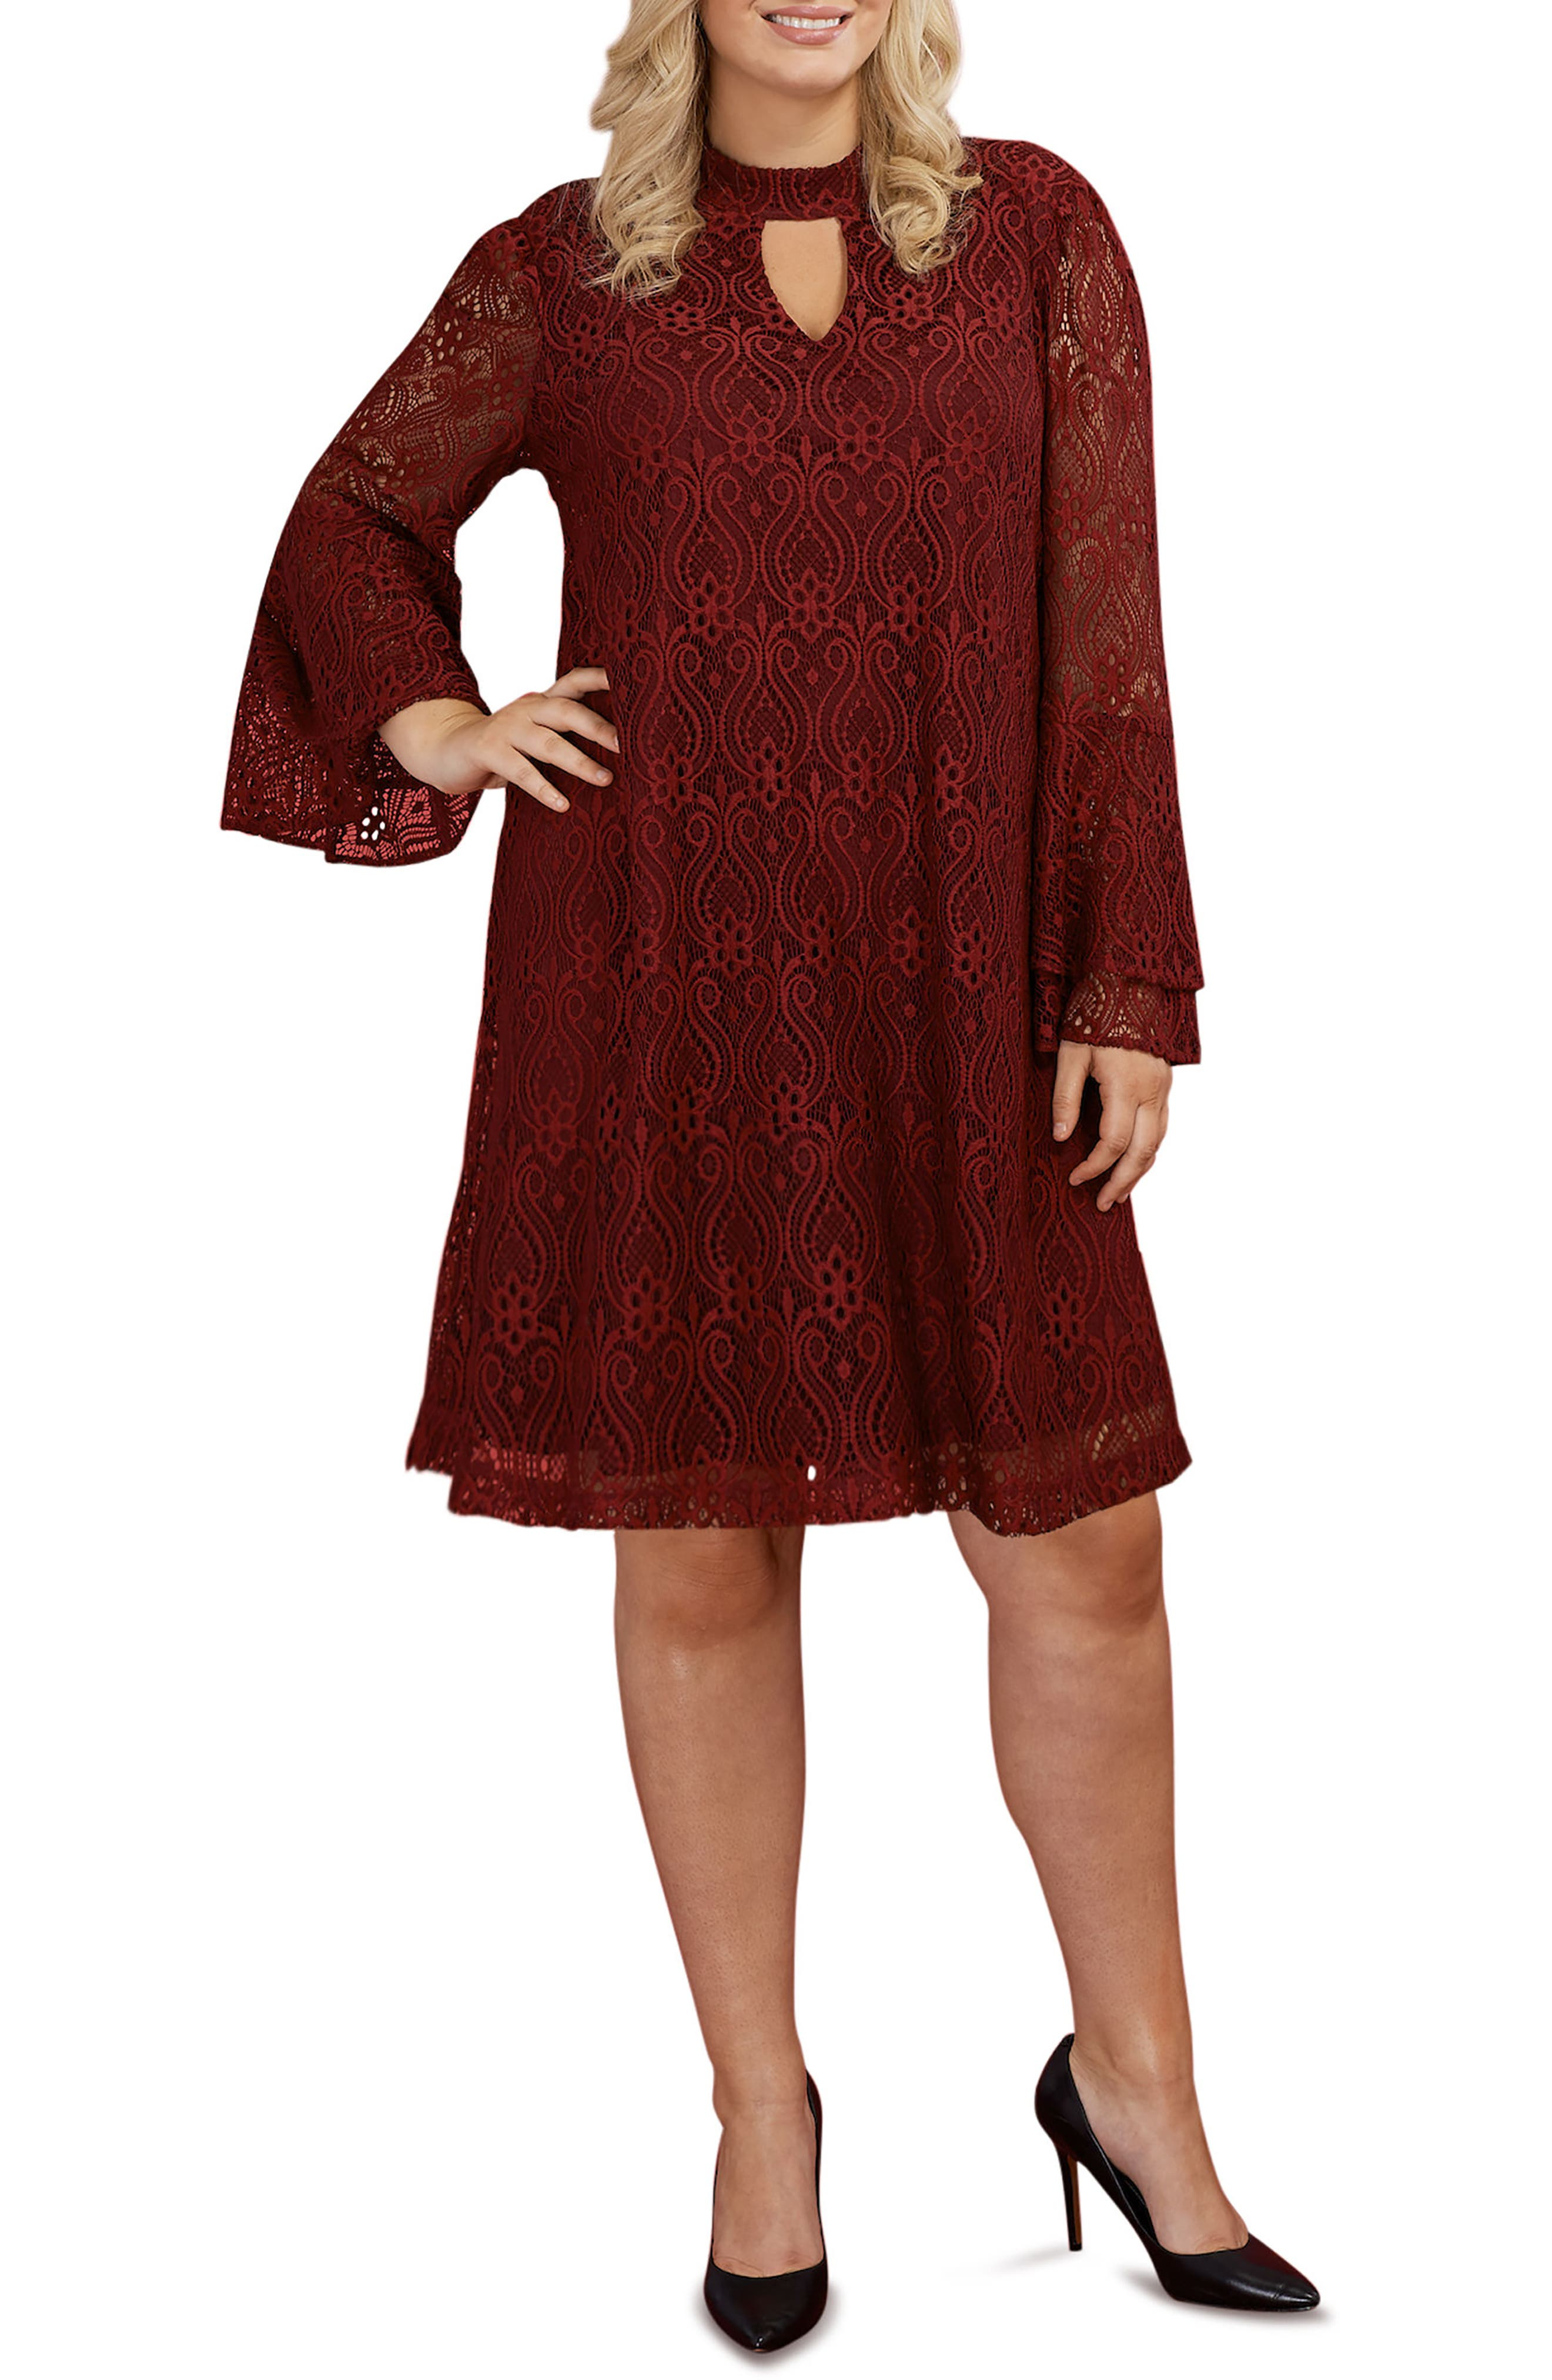 Alternate Image 1 Selected - ECI Lace Bell Sleeve A-Line Dress (Plus Size)